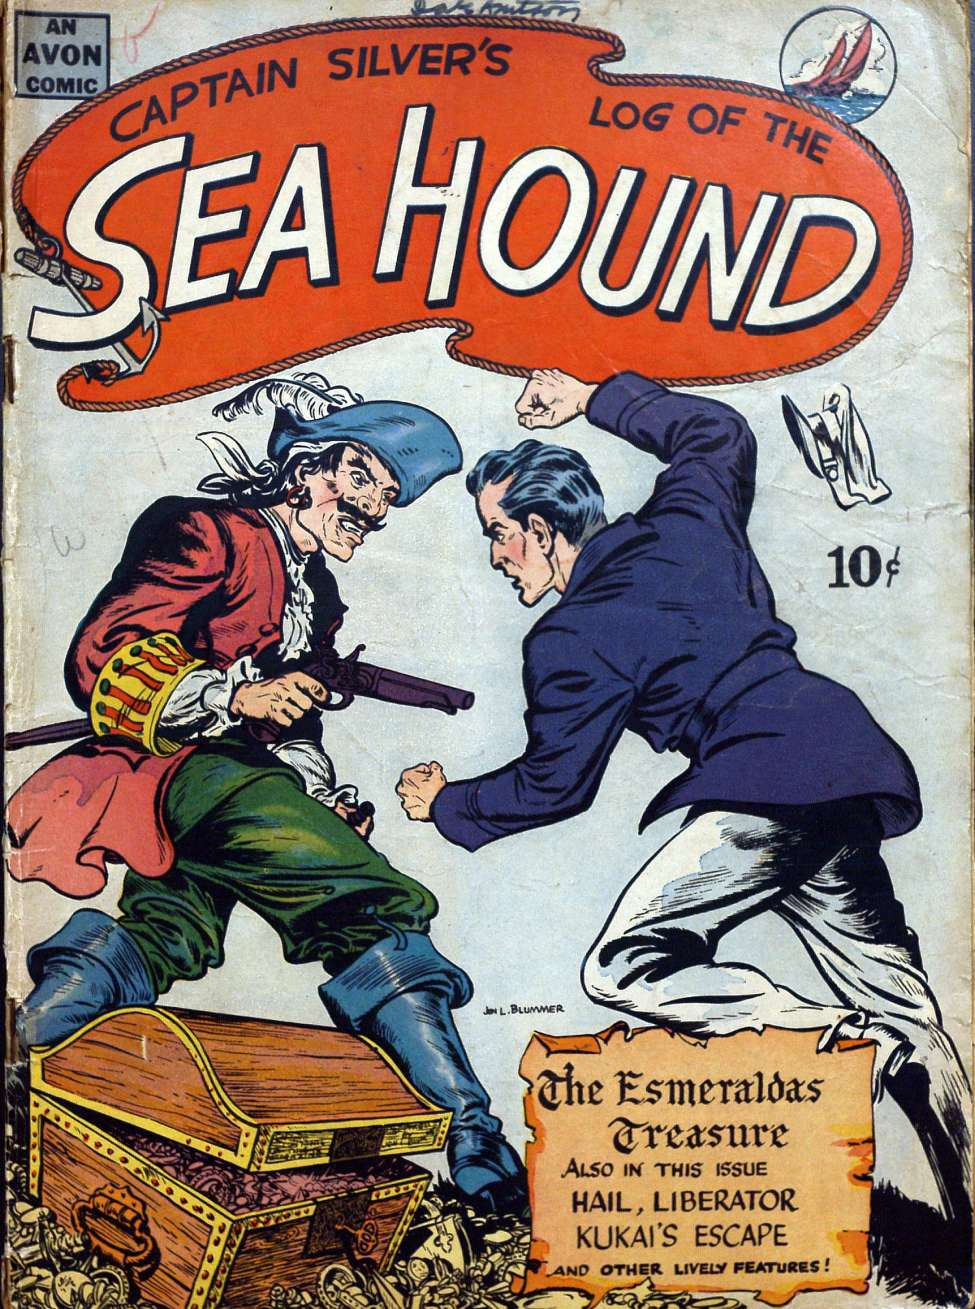 Comic Book Cover For Captain Silver's Log of the Sea Hound (nn) - Version 2